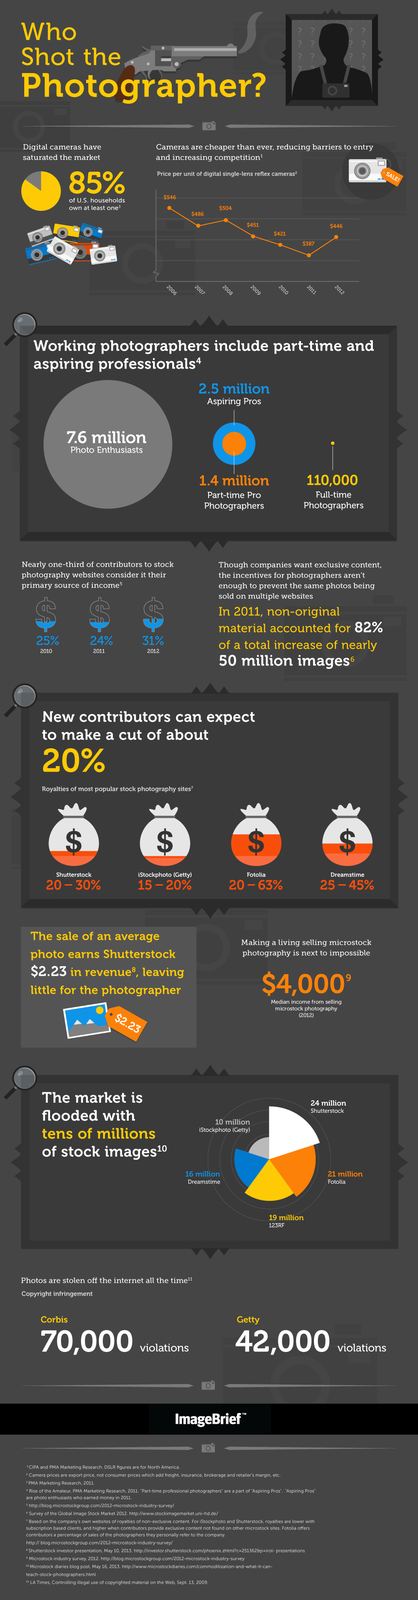 Imagebrief-Infographic.png